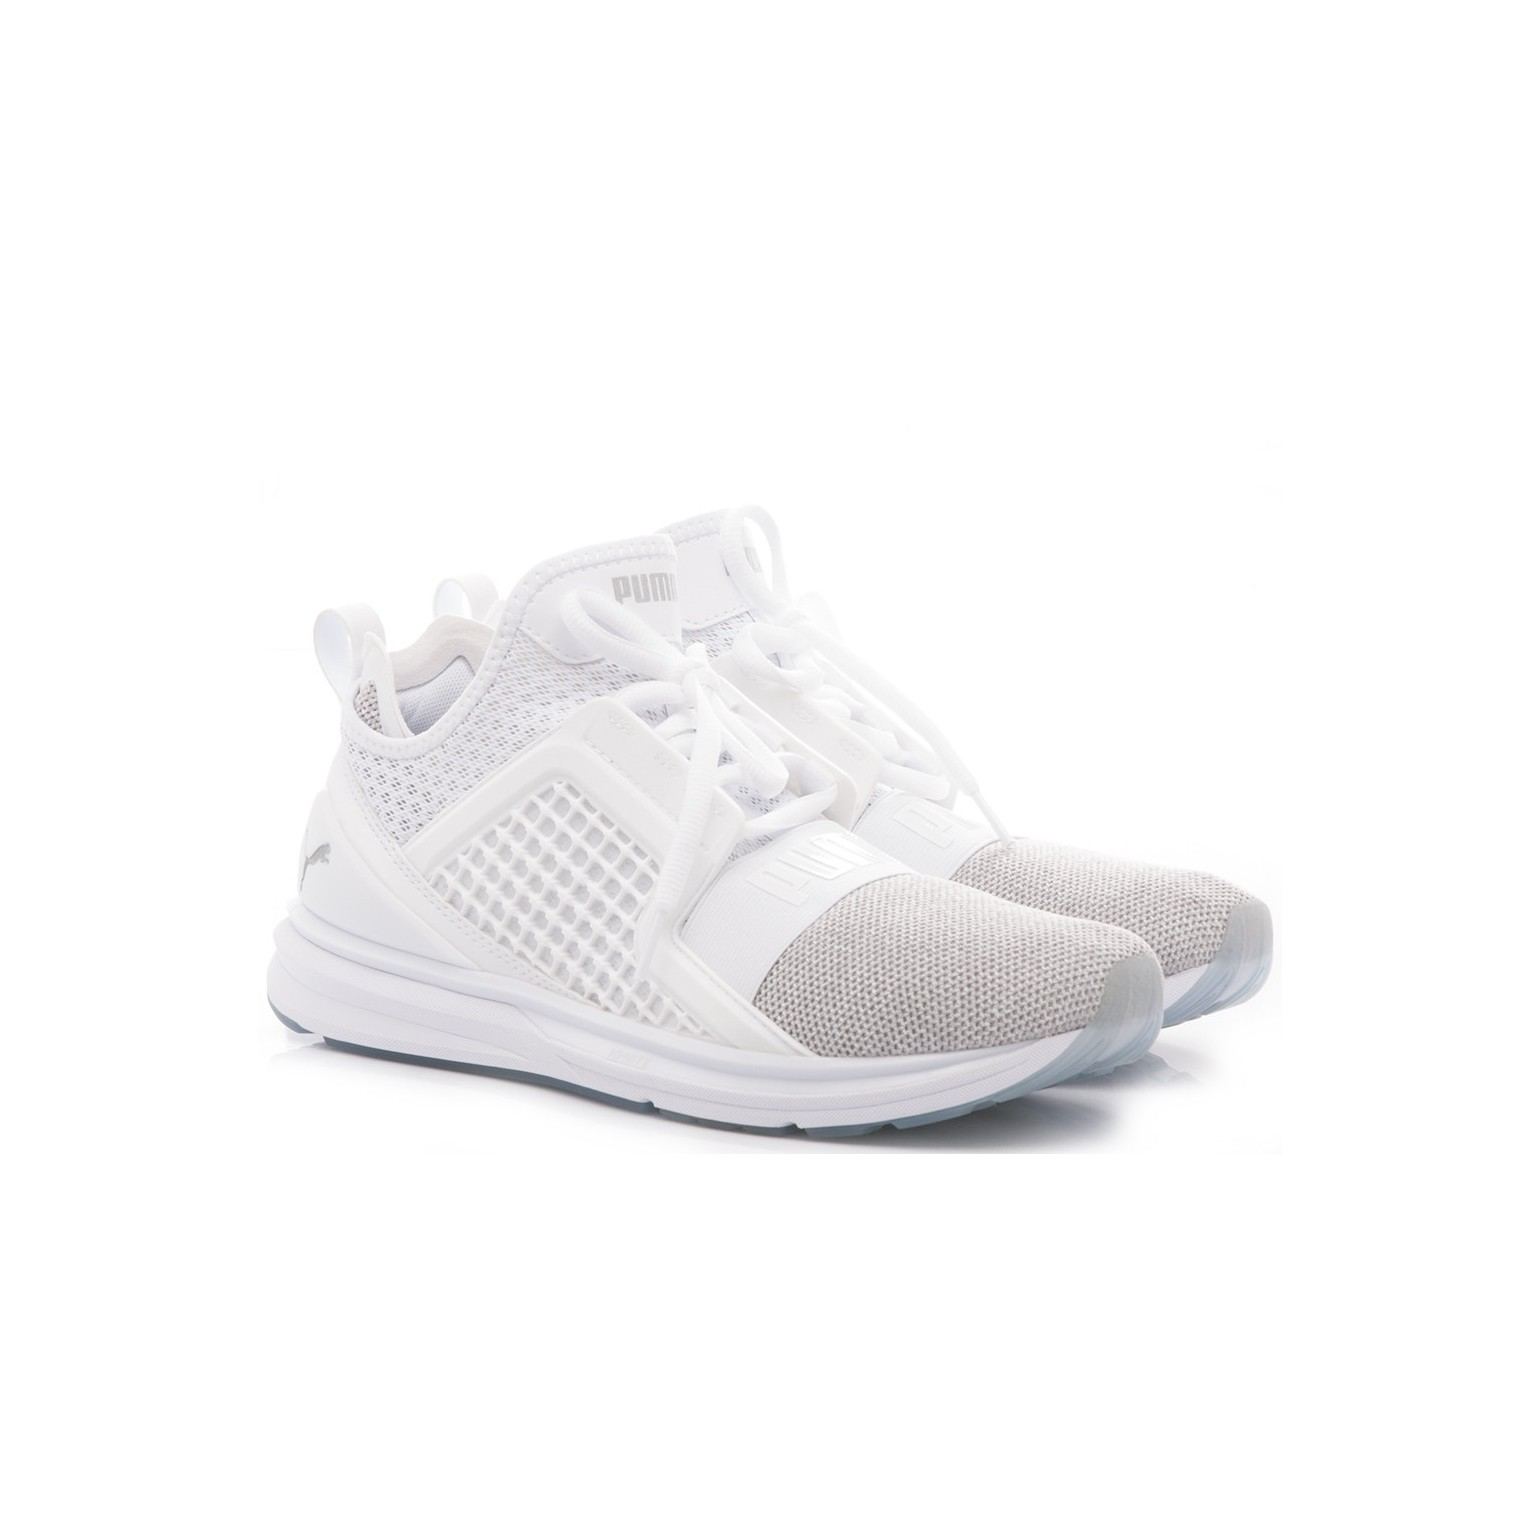 big sale f8862 4ab47 Puma Man's Sneakers Ignite Limitless Knit White 18998705